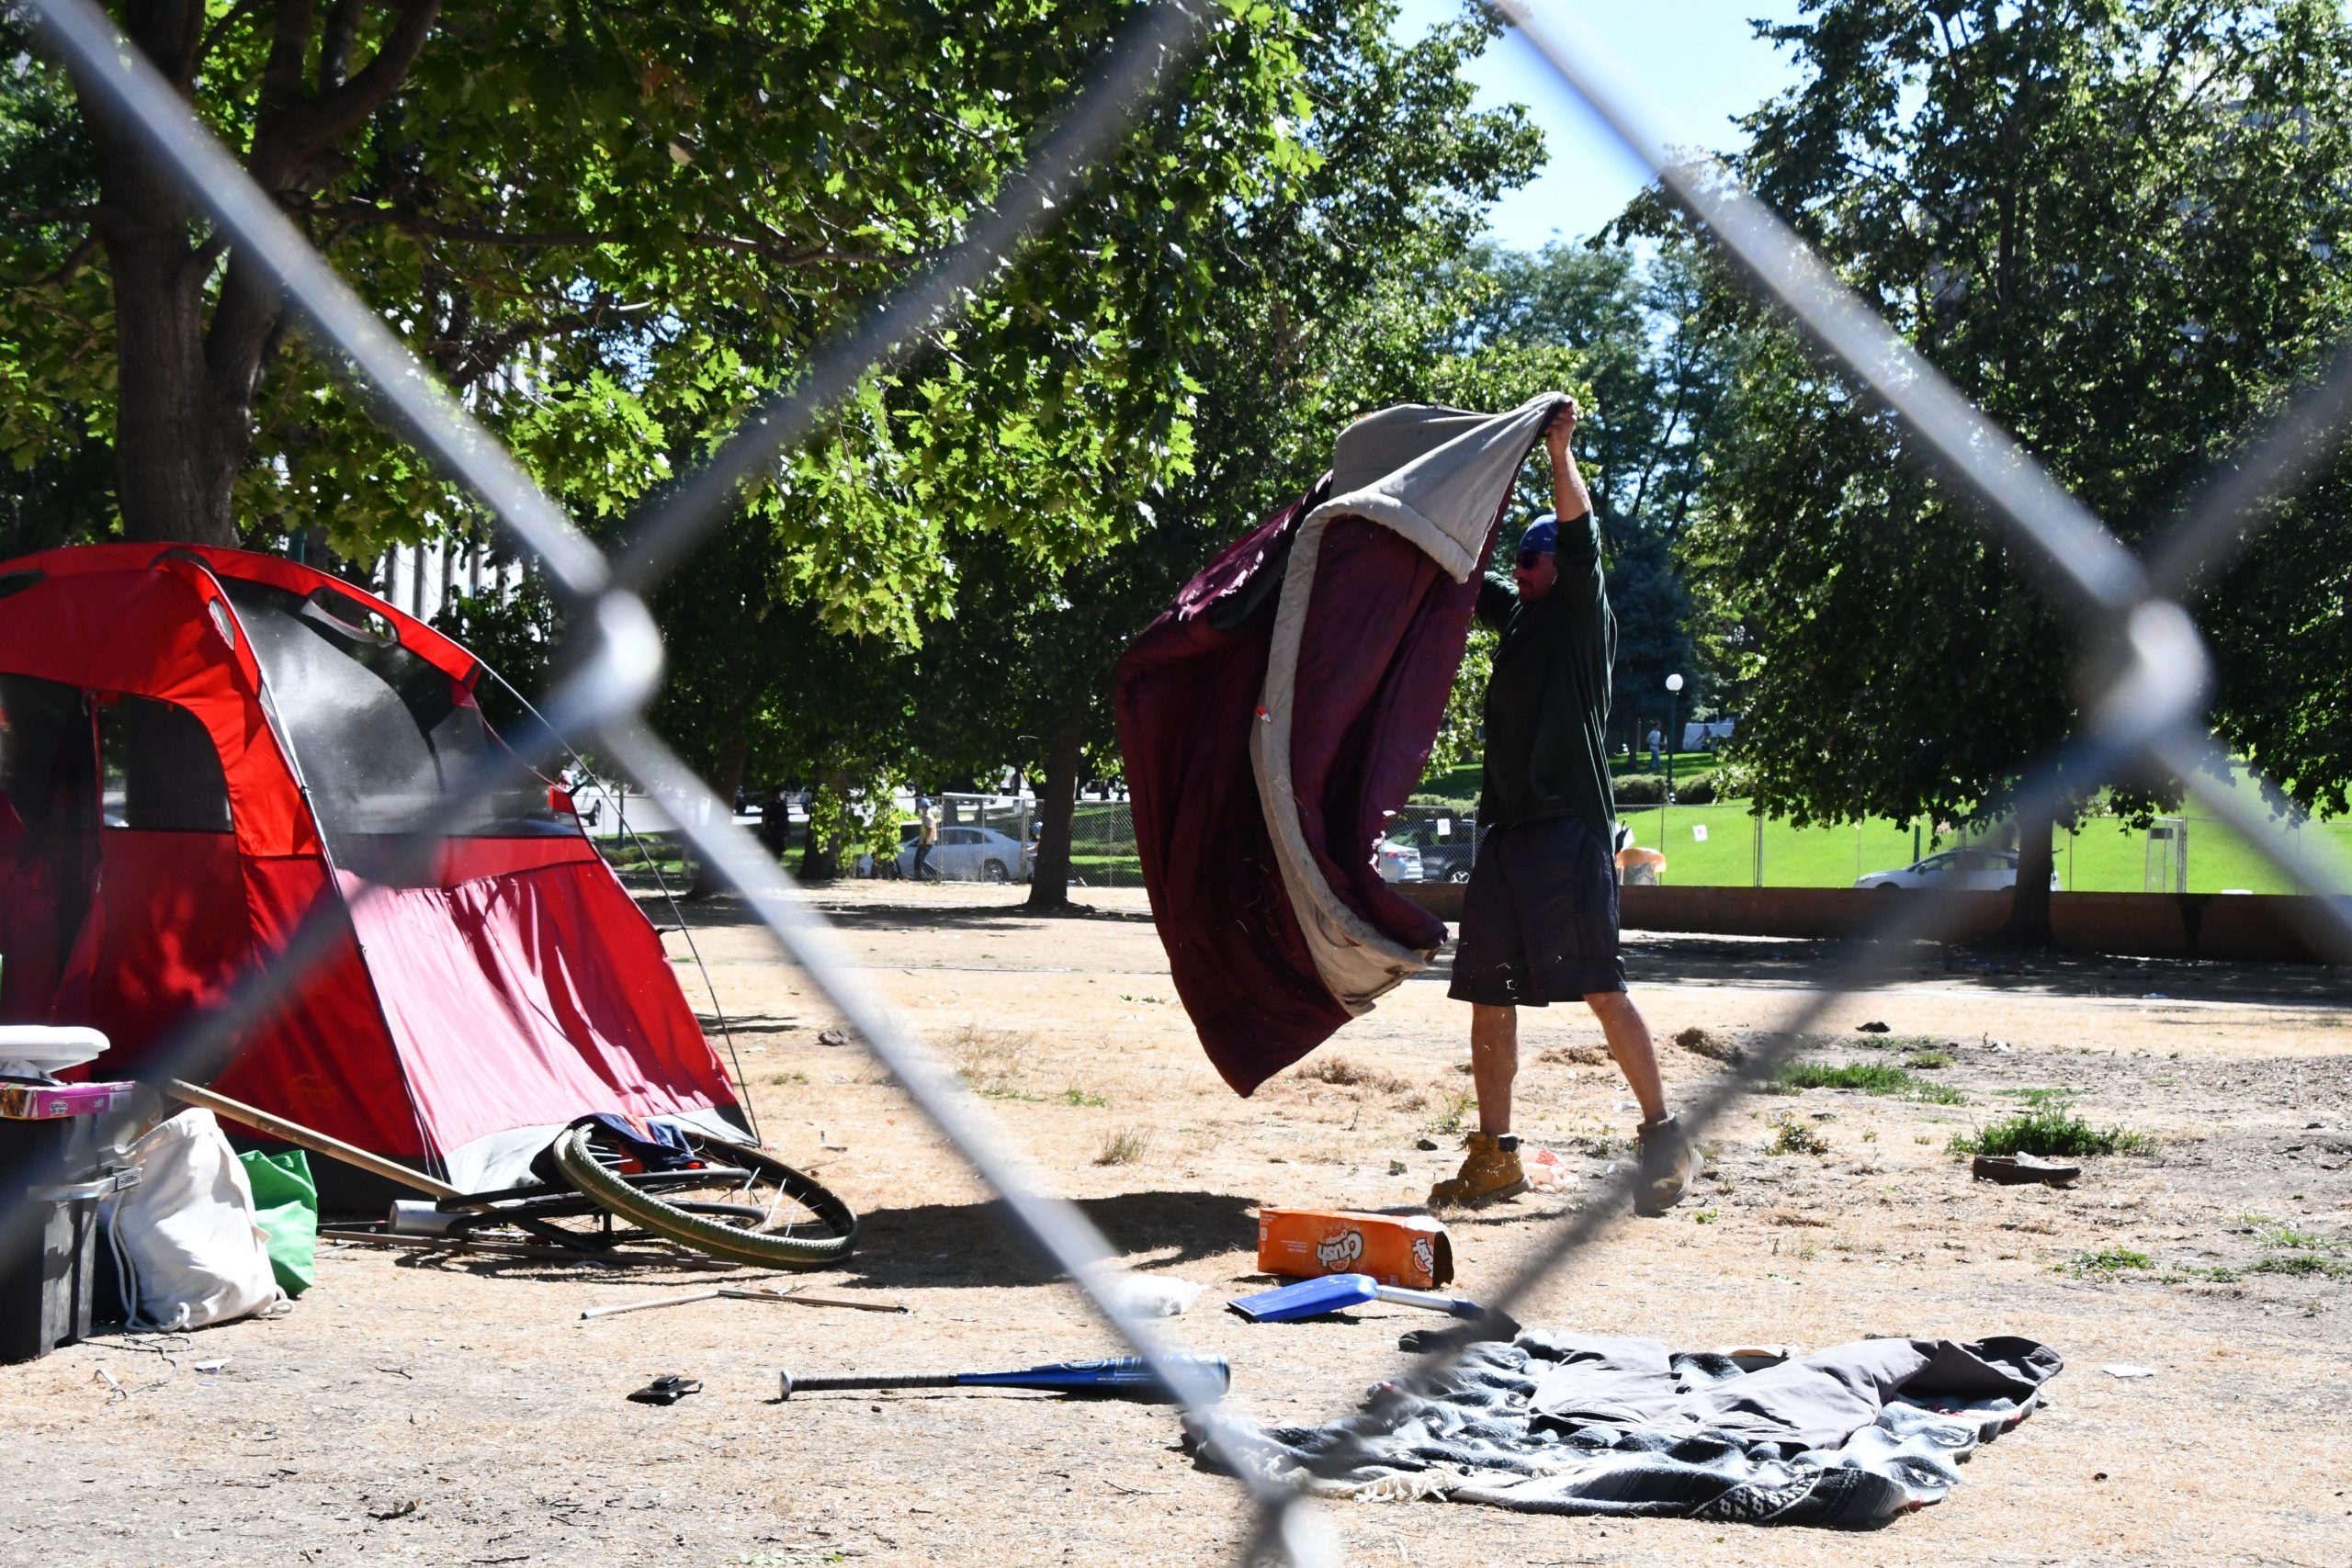 Denver officials didn't give notice before large-scale homeless sweeps in part to avoid protests, federal judge writes